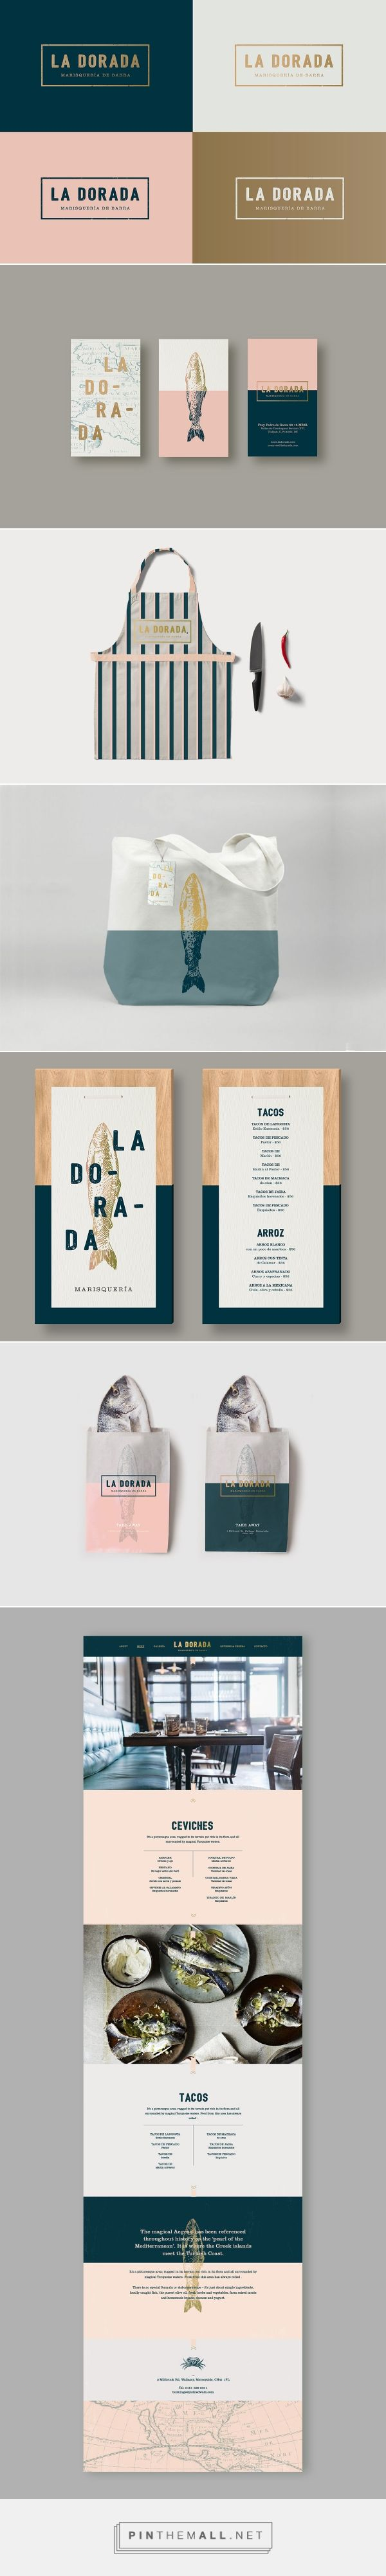 La Dorada packaging branding on Behance curated by Packaging Diva PD